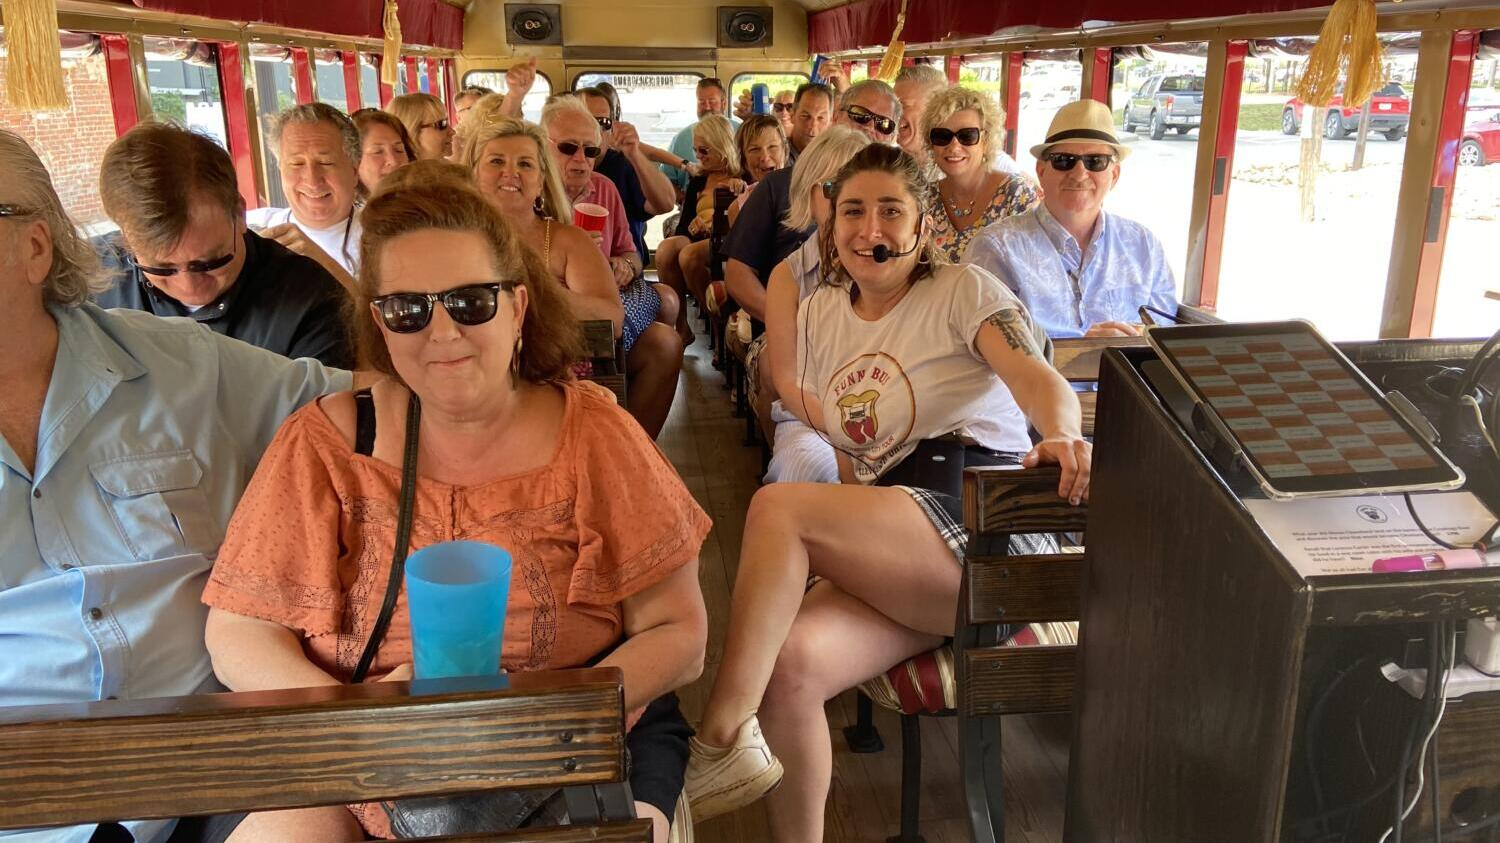 Funny Bus is a top 10 attraction in Cleveland.